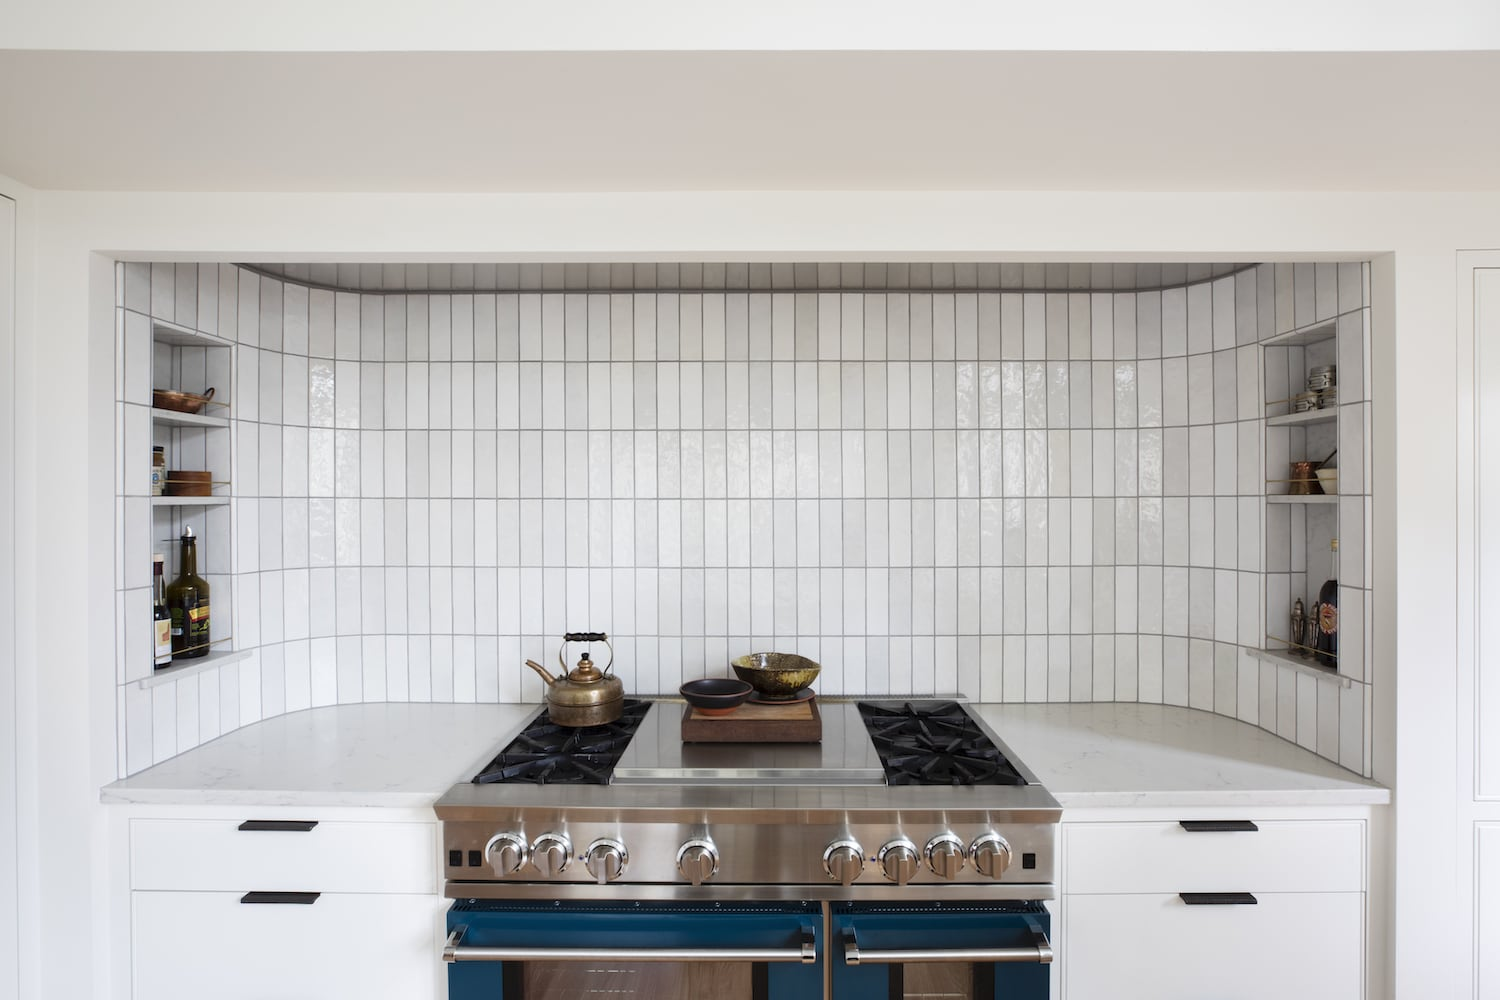 Willamette Heights - traditional white kitchen, range alcove, spice niches, colorful range